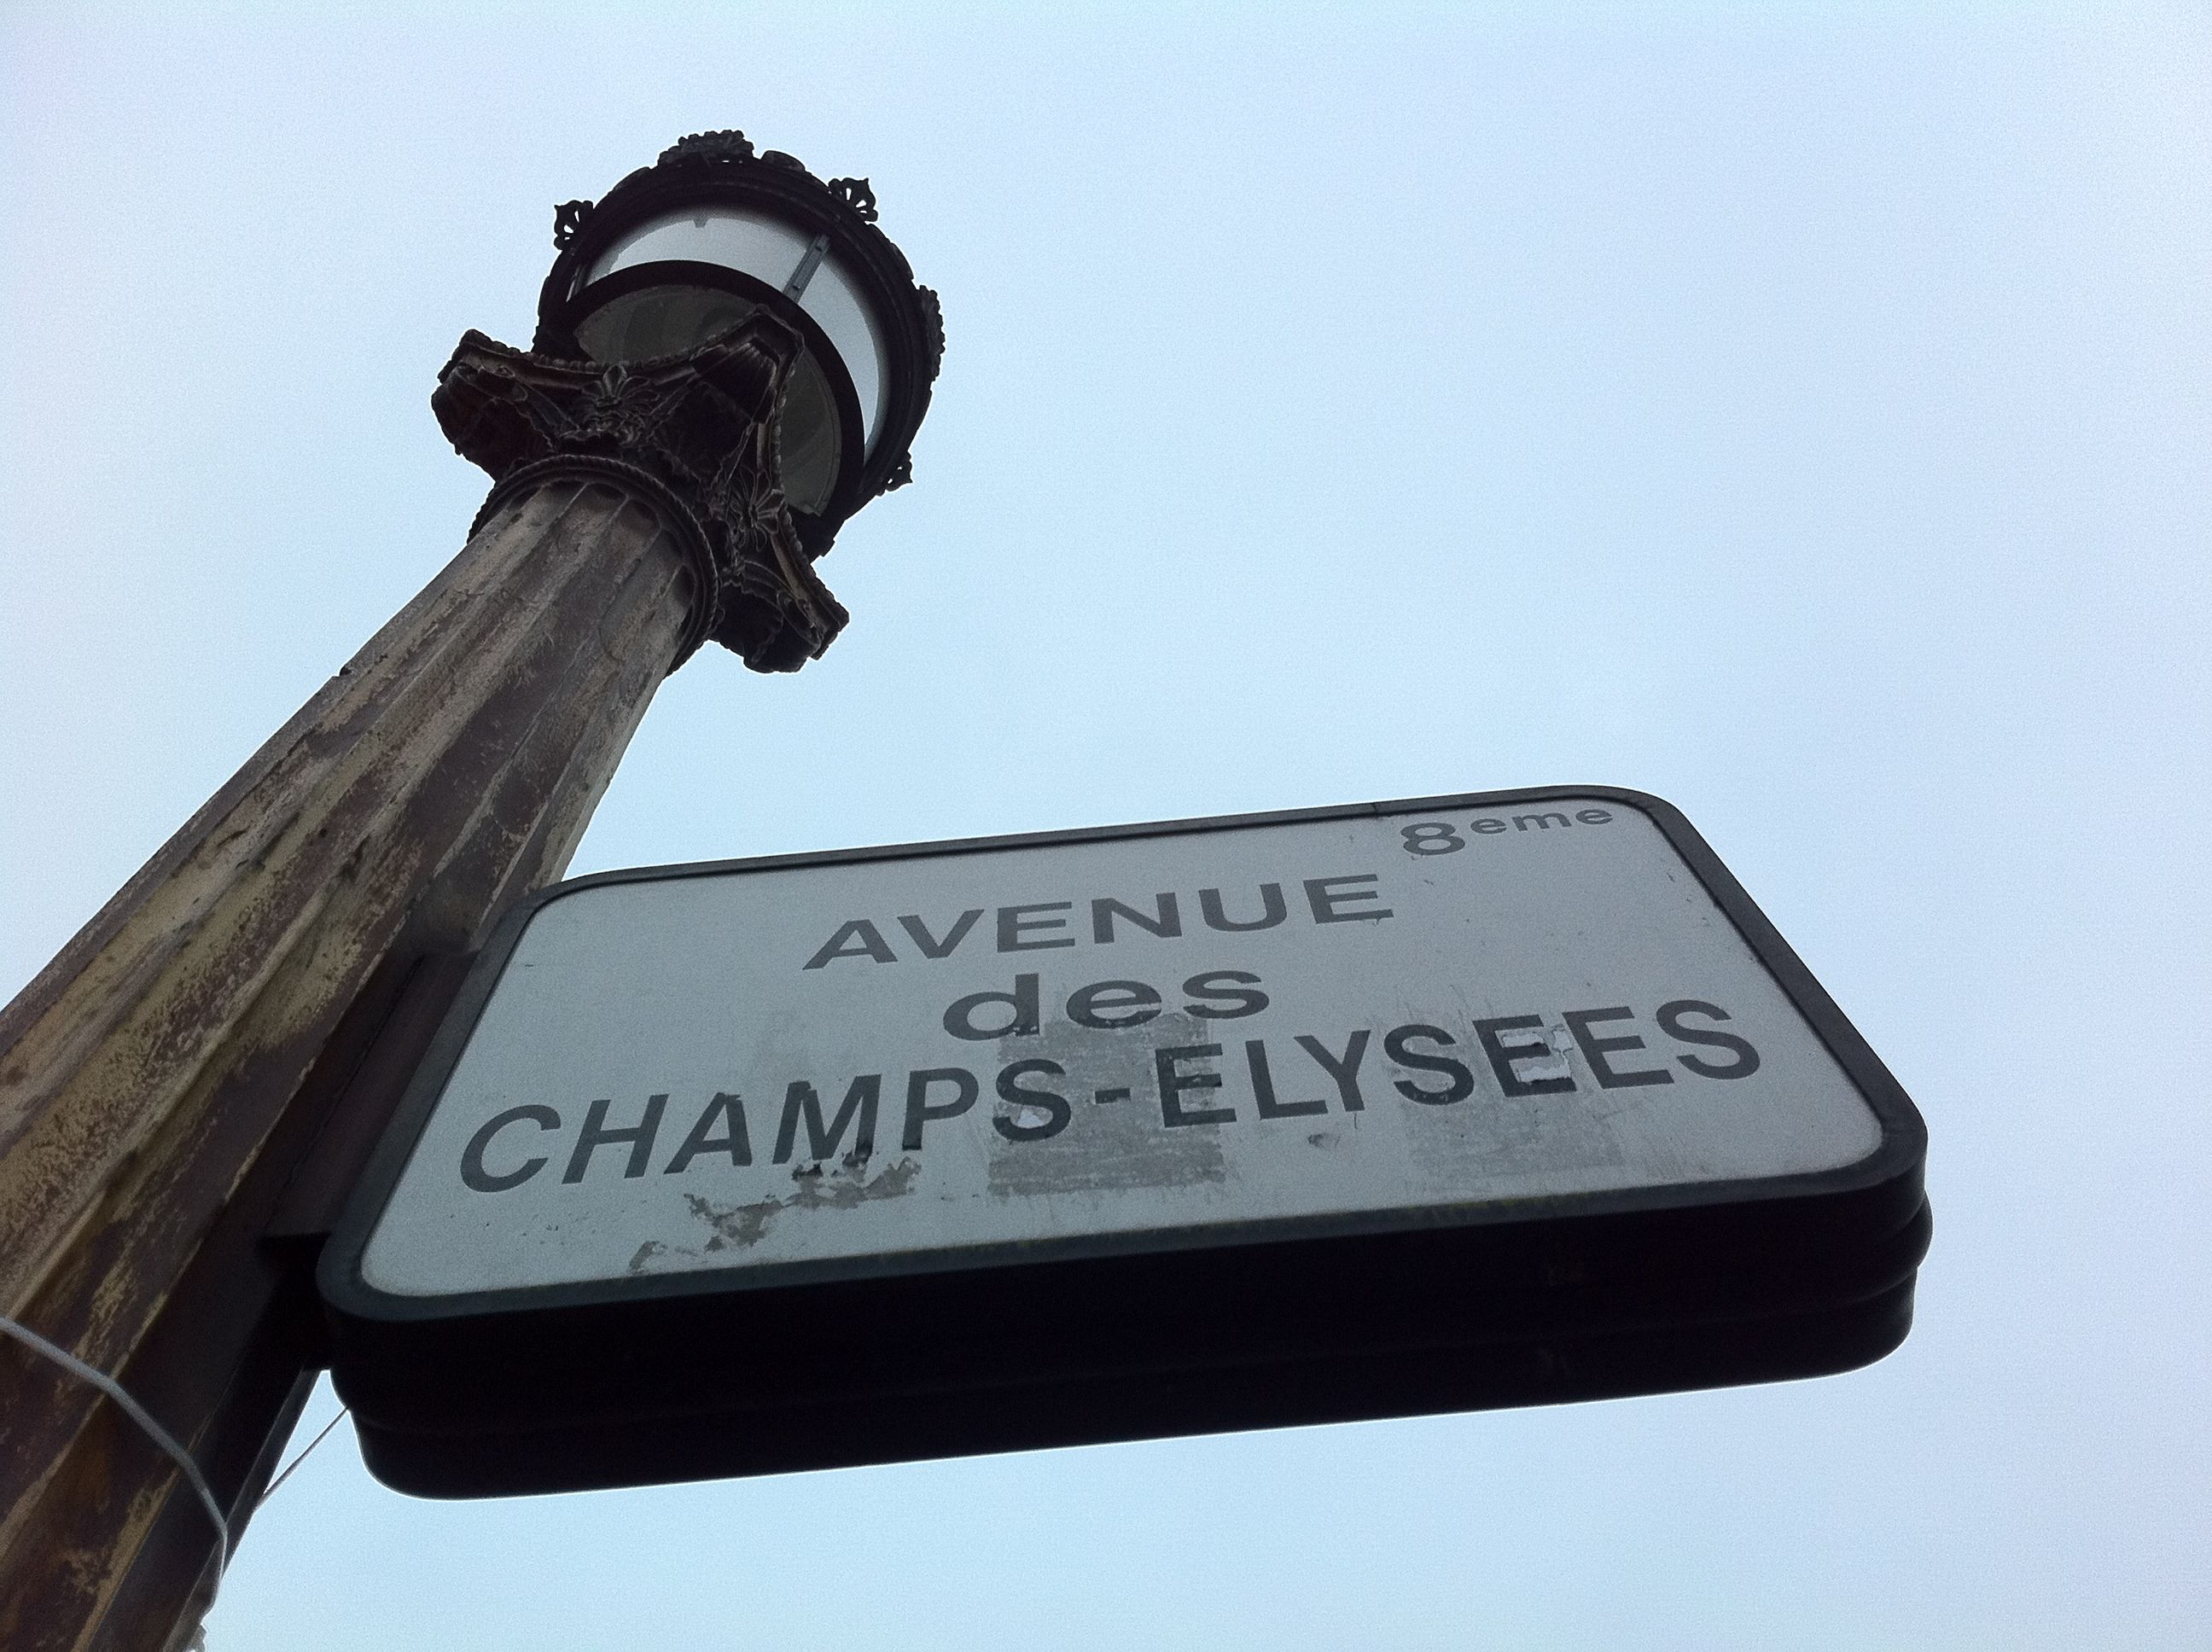 Avenue des Champs-Elysees. By Hayley